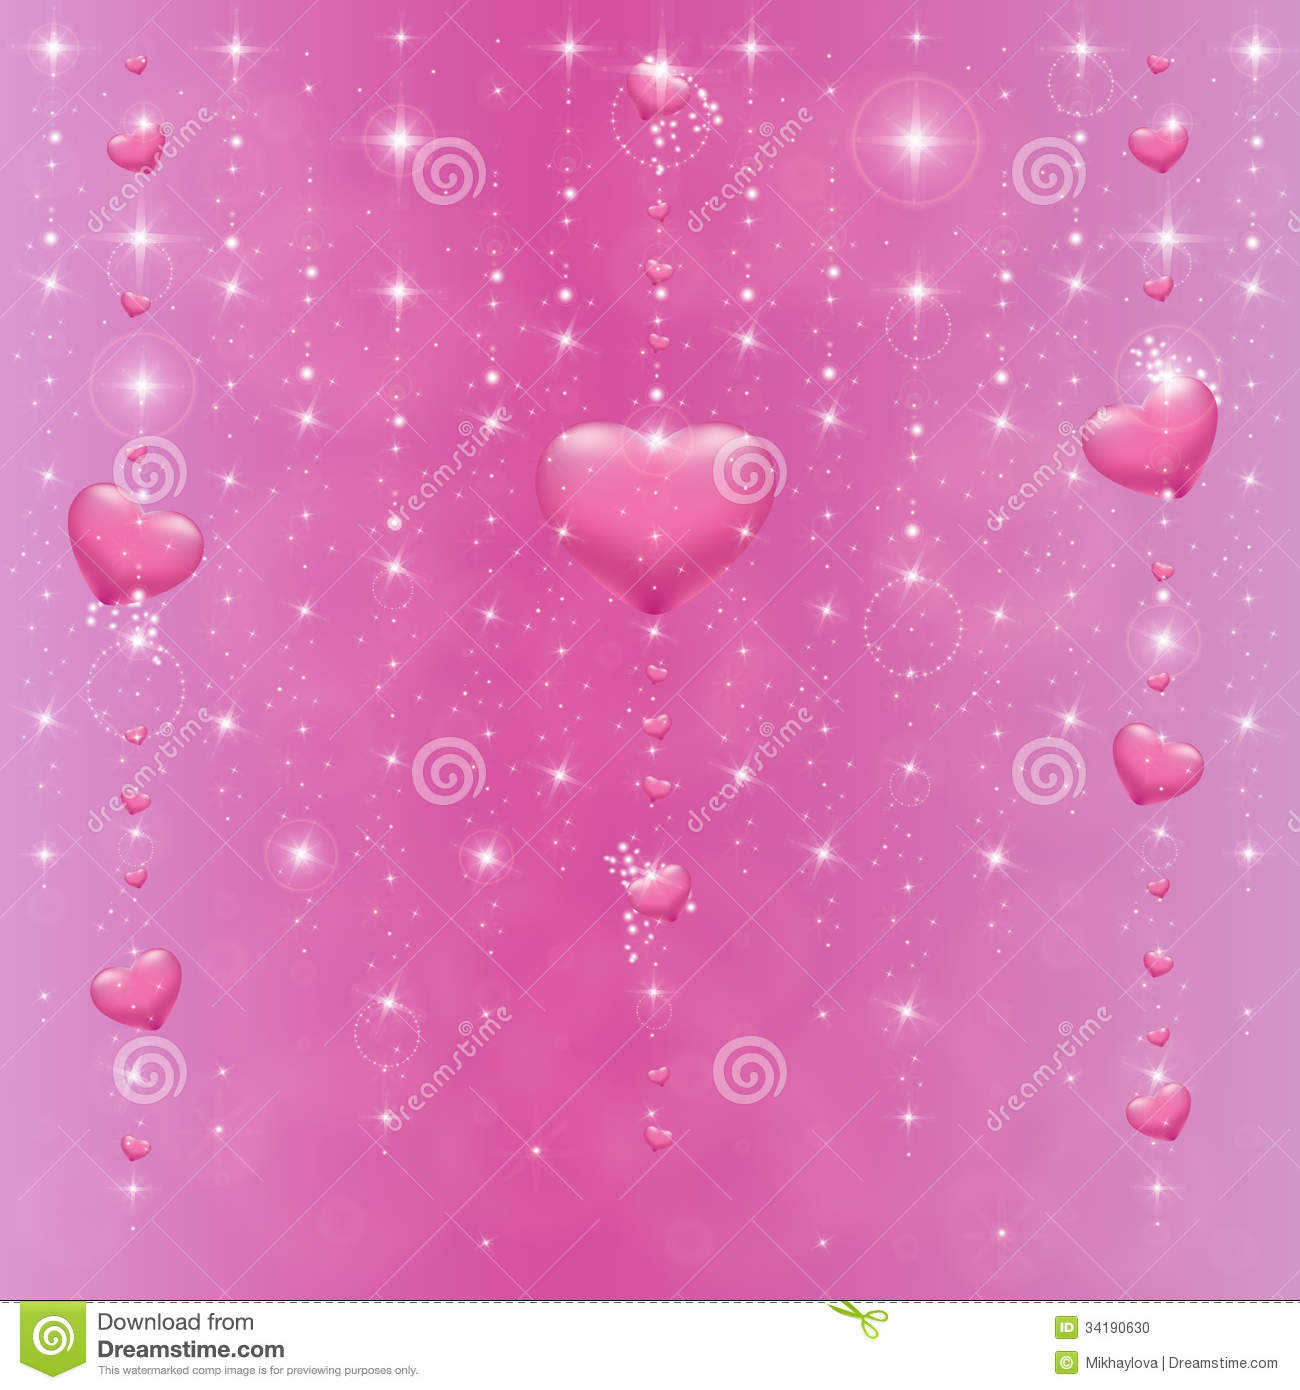 Hearts On A Pink Background With Stars Stock Photo - Image ...